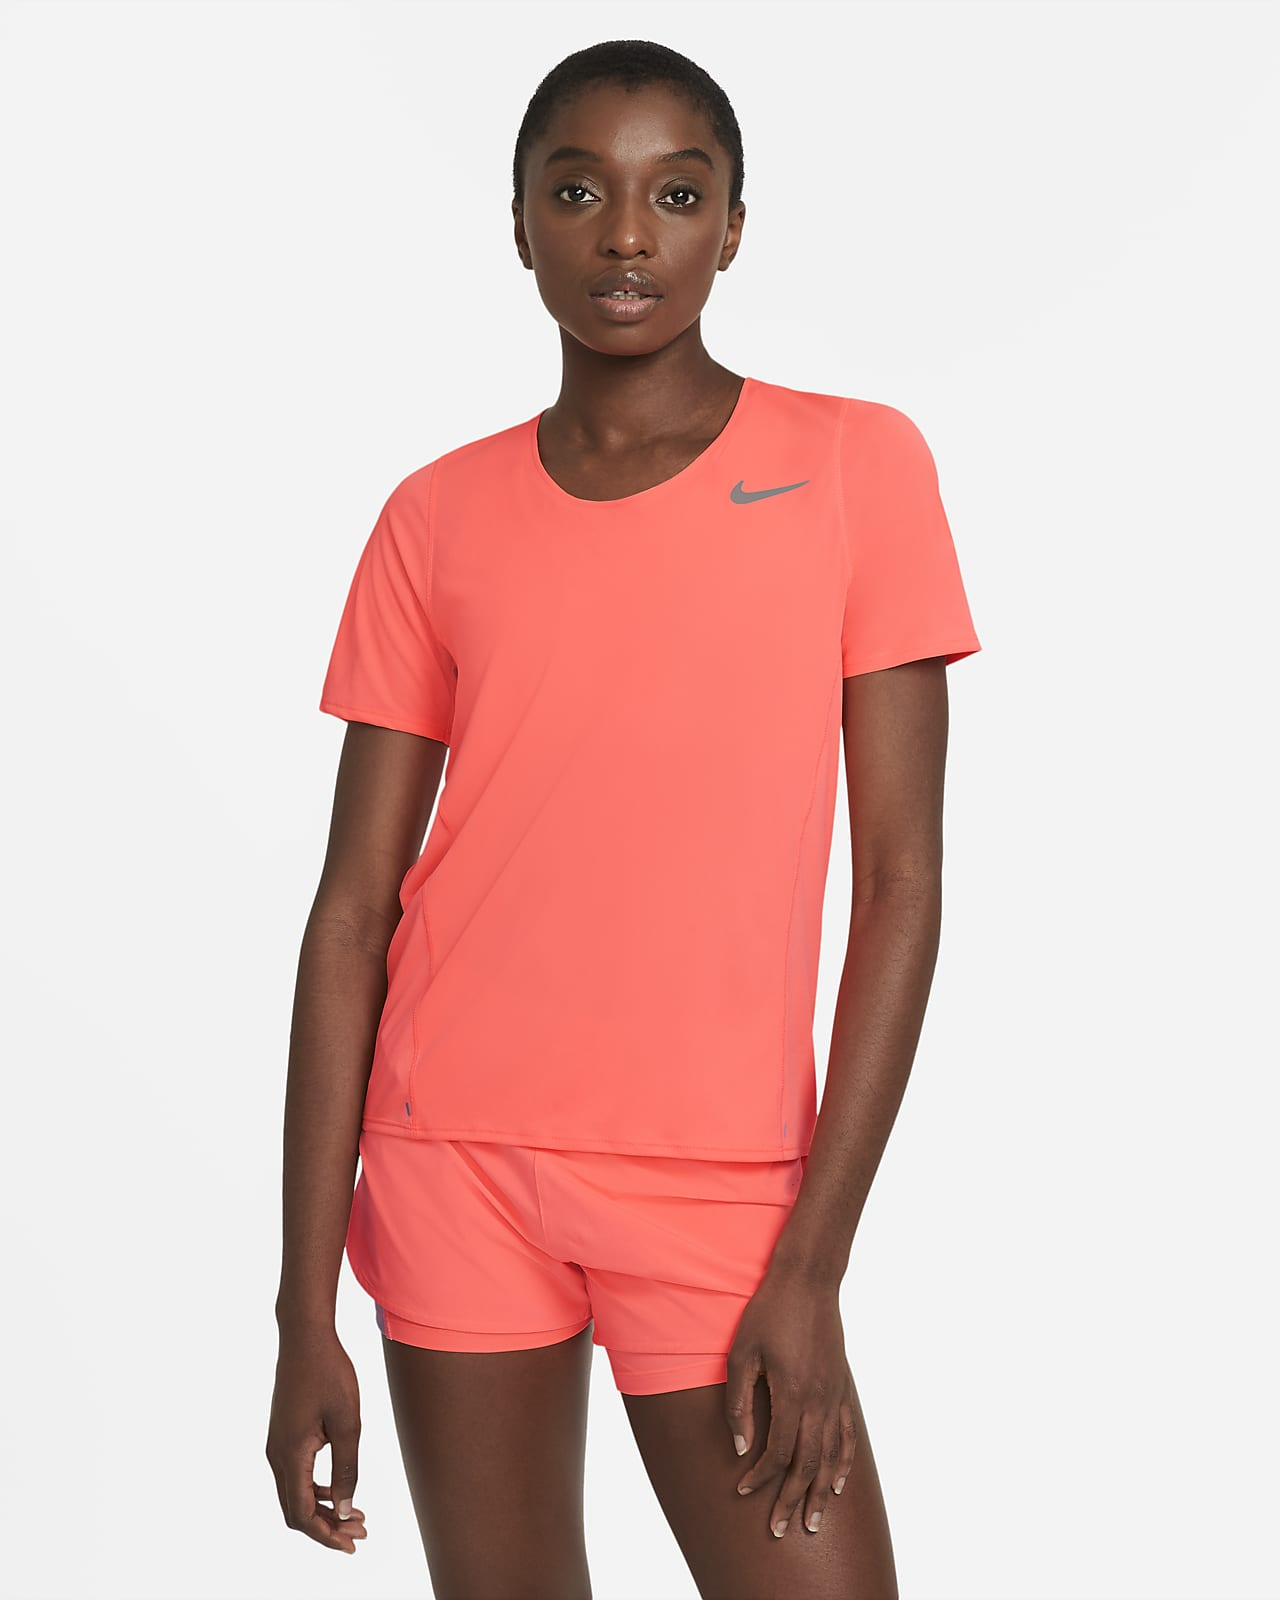 Nike City Sleek Kurzarm-Laufoberteil für Damen